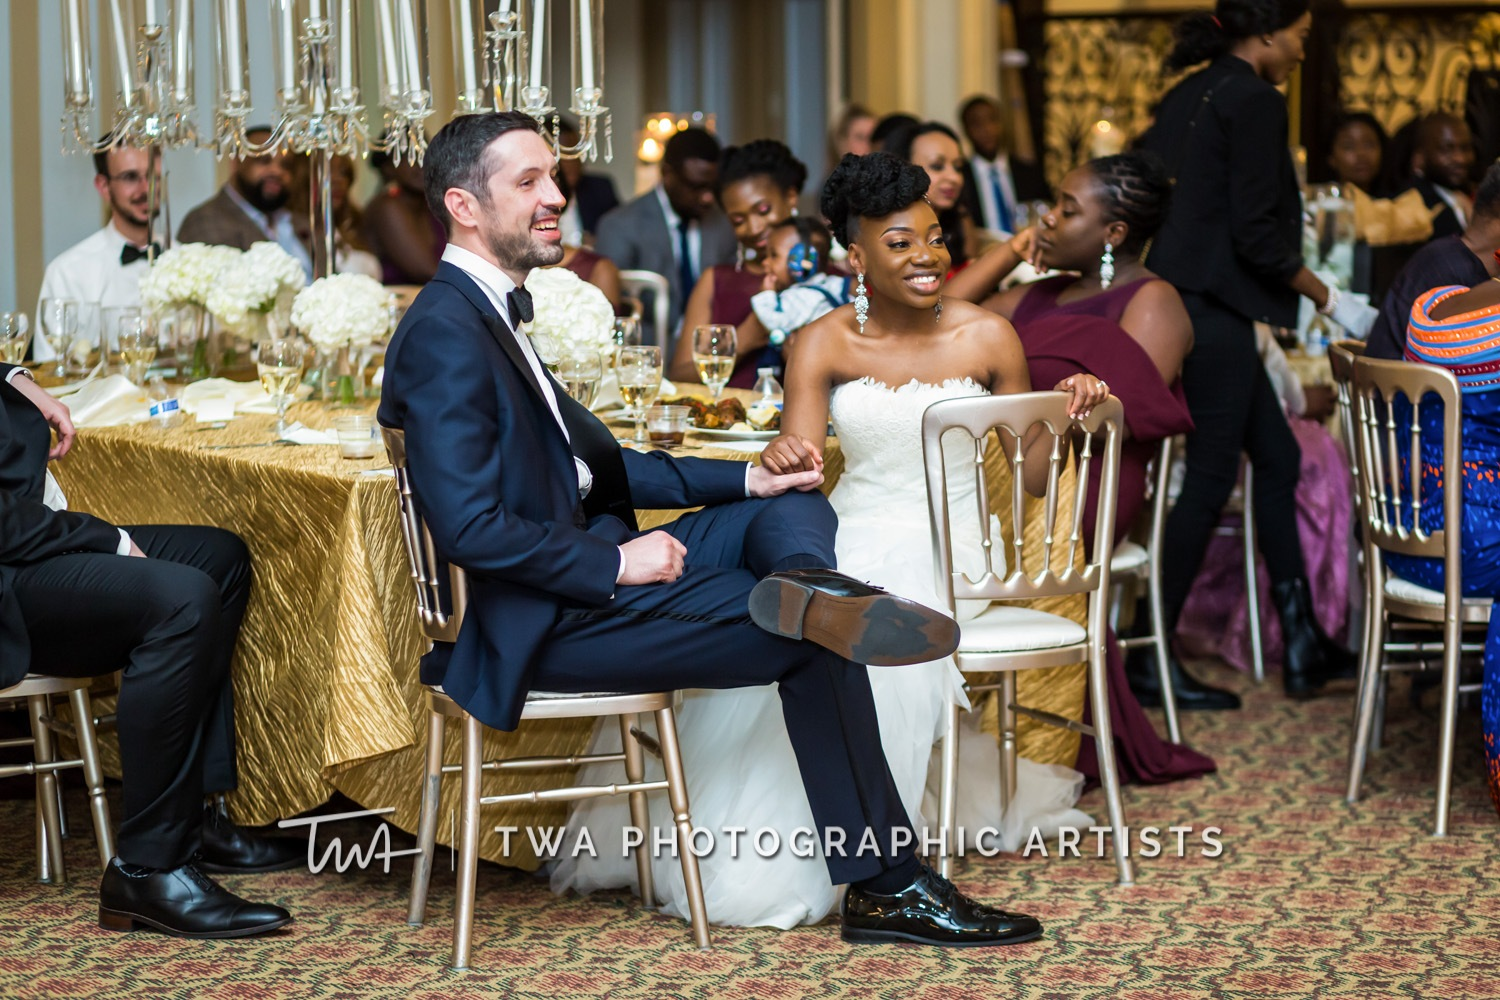 Chicago-Wedding-Photographer-TWA-Photographic-Artists-Stan-Mansion_Ityavyar_Oakley_MJ-0570-1